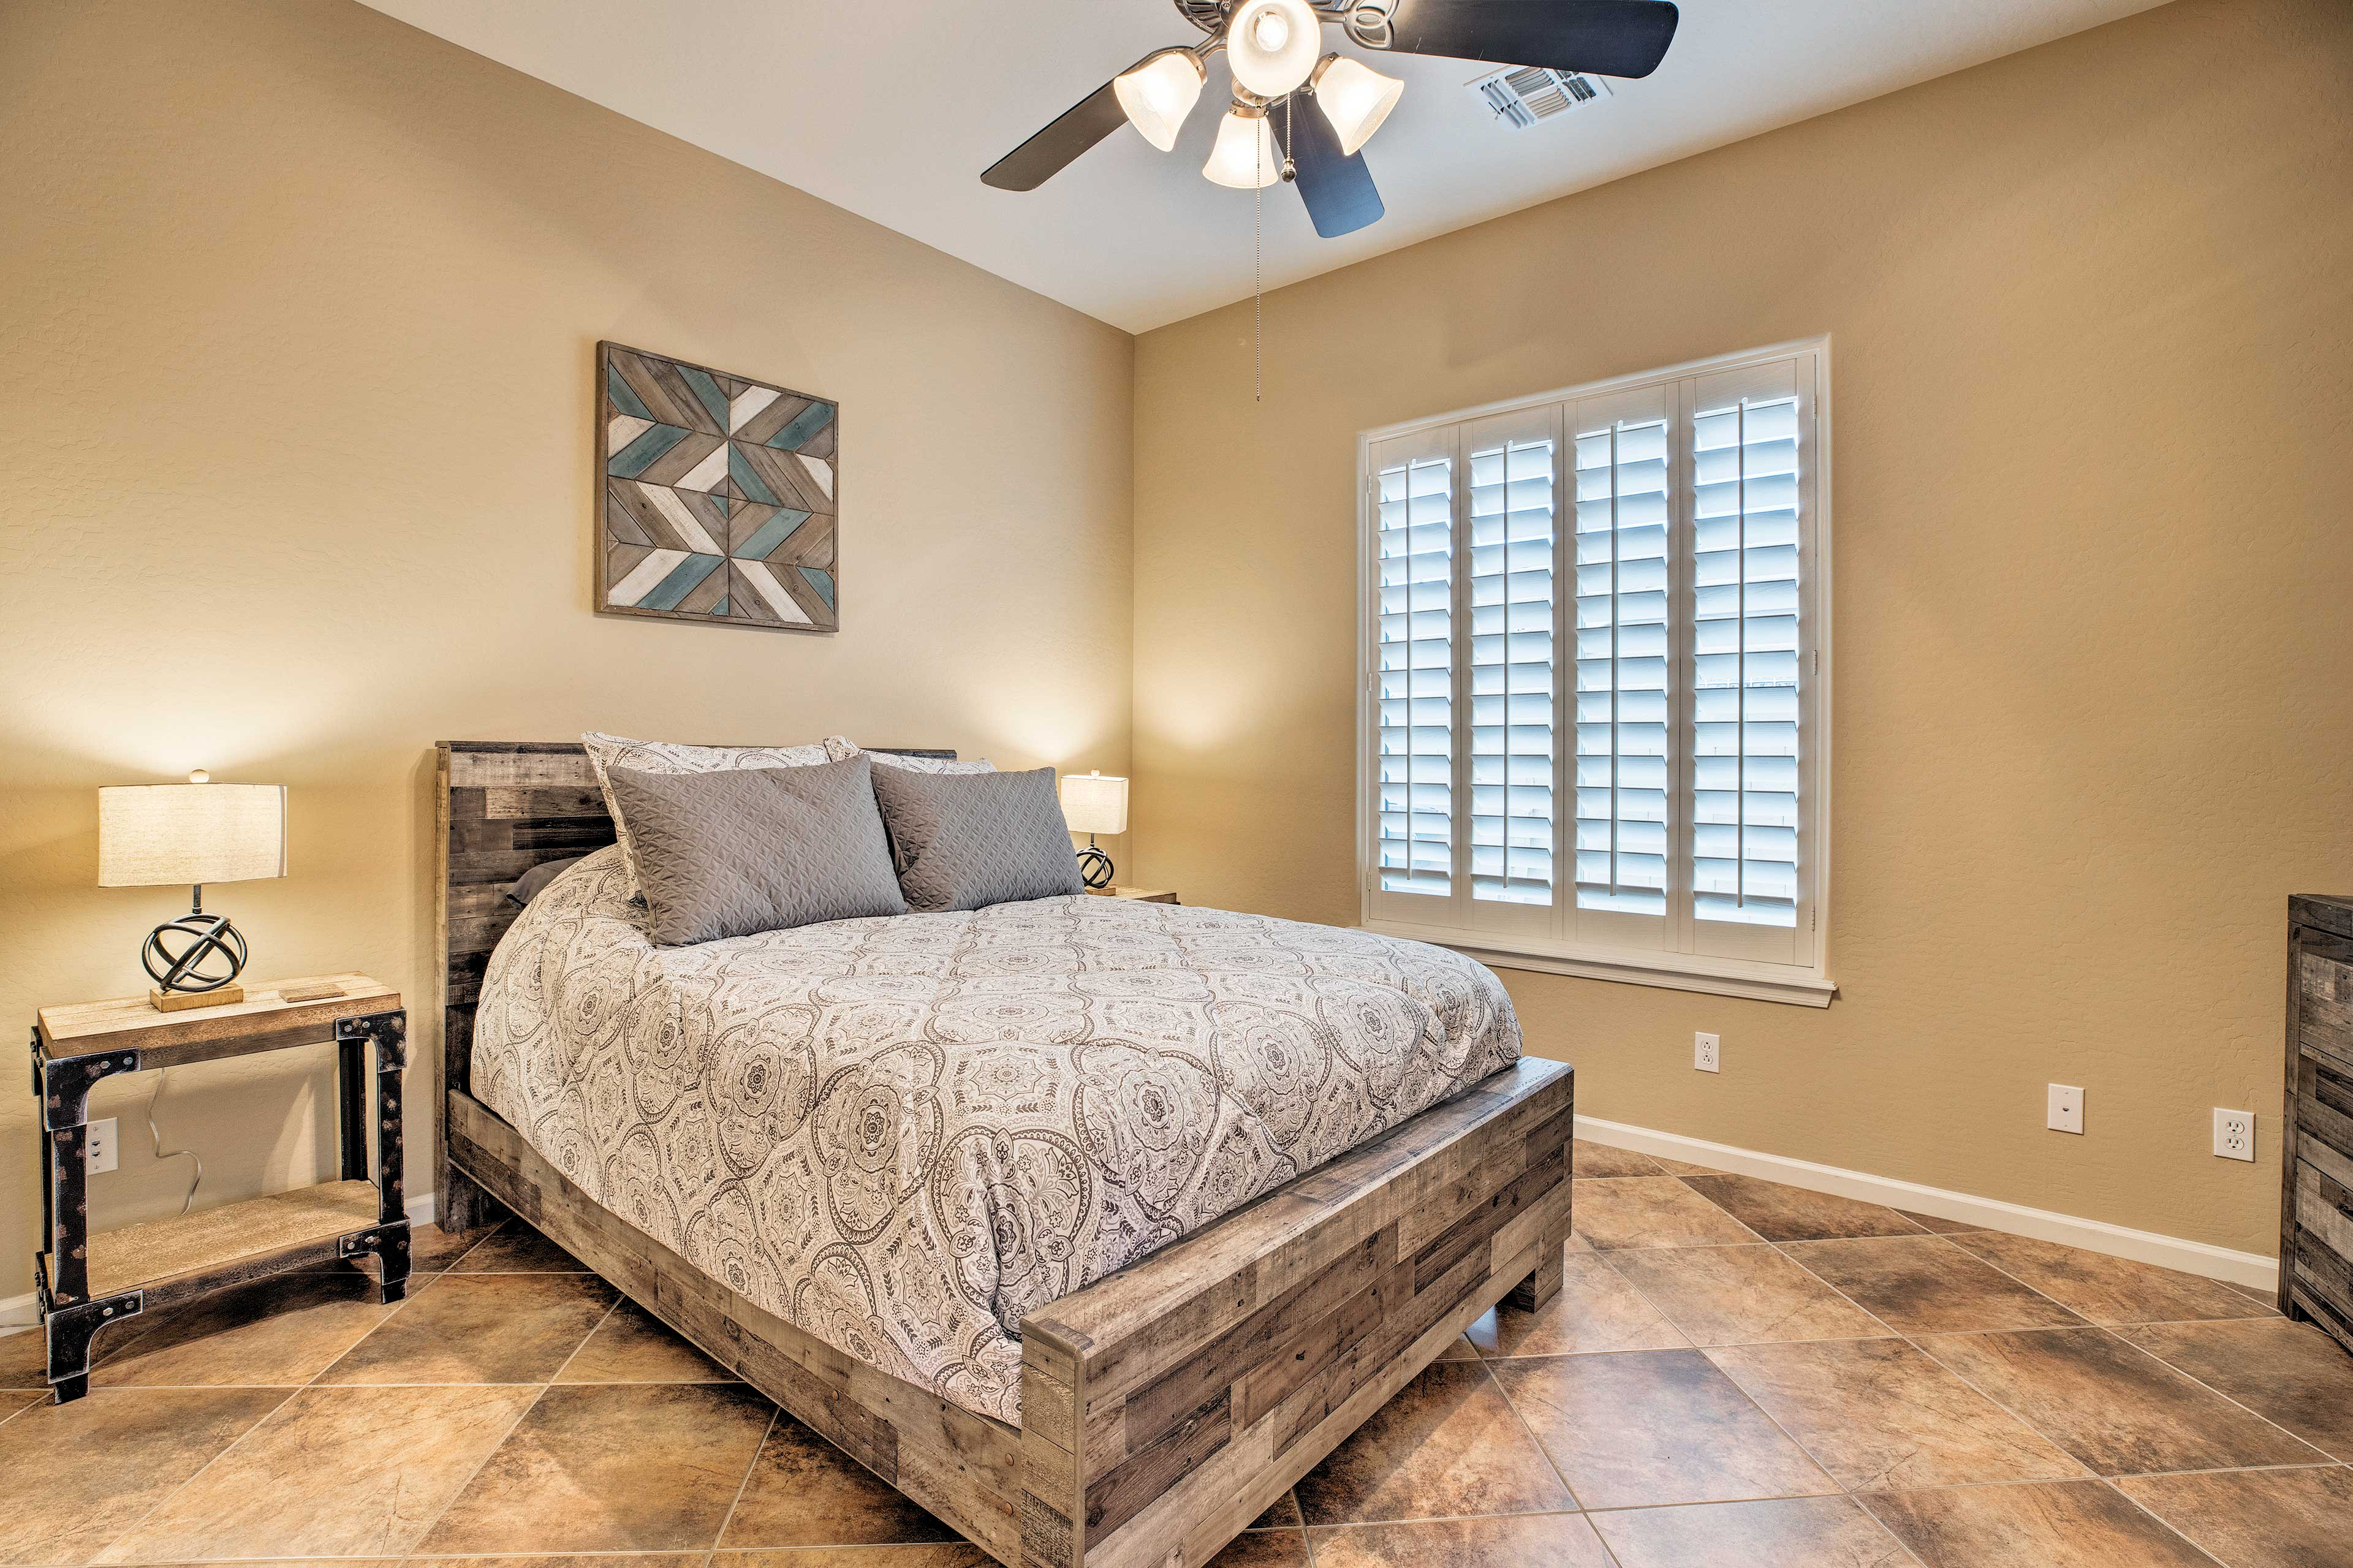 The home's additional 2 bedrooms both feature queen beds.